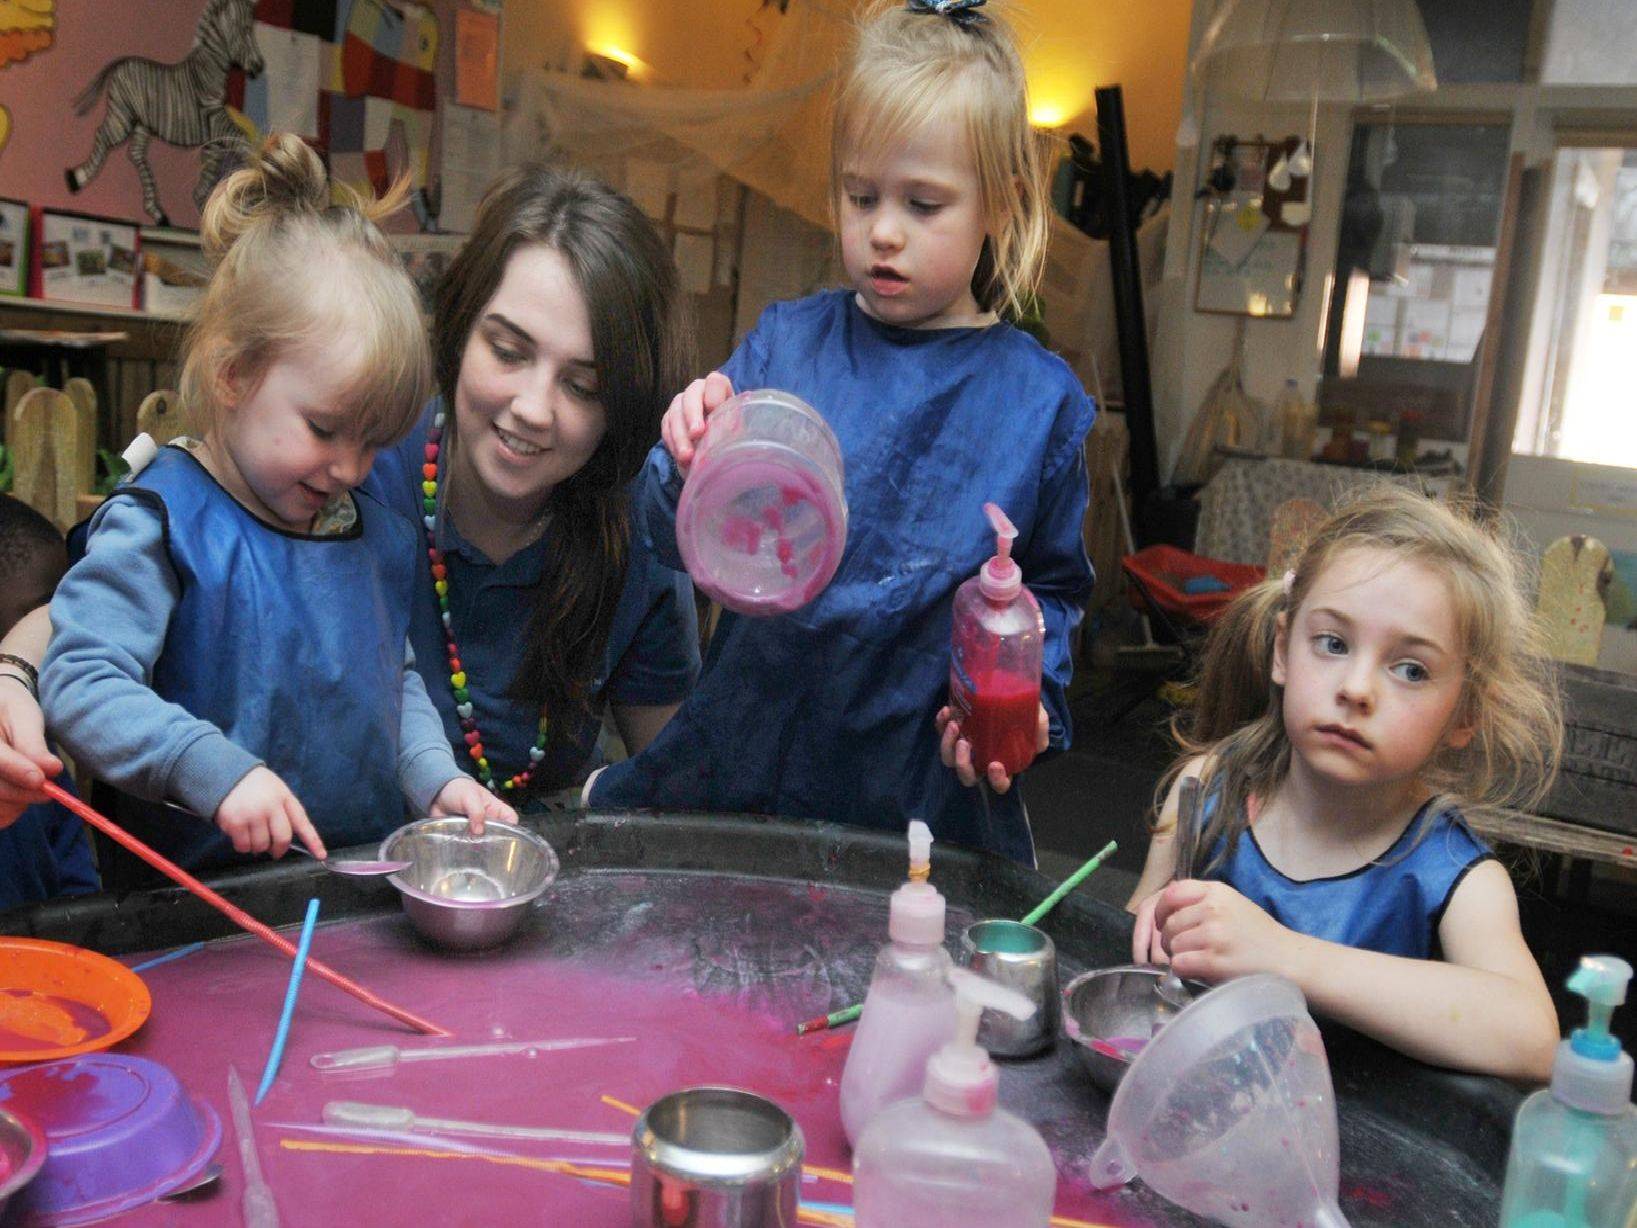 Kids get crafty with paint, clay and hand soaps at The Wendy House Nursery.